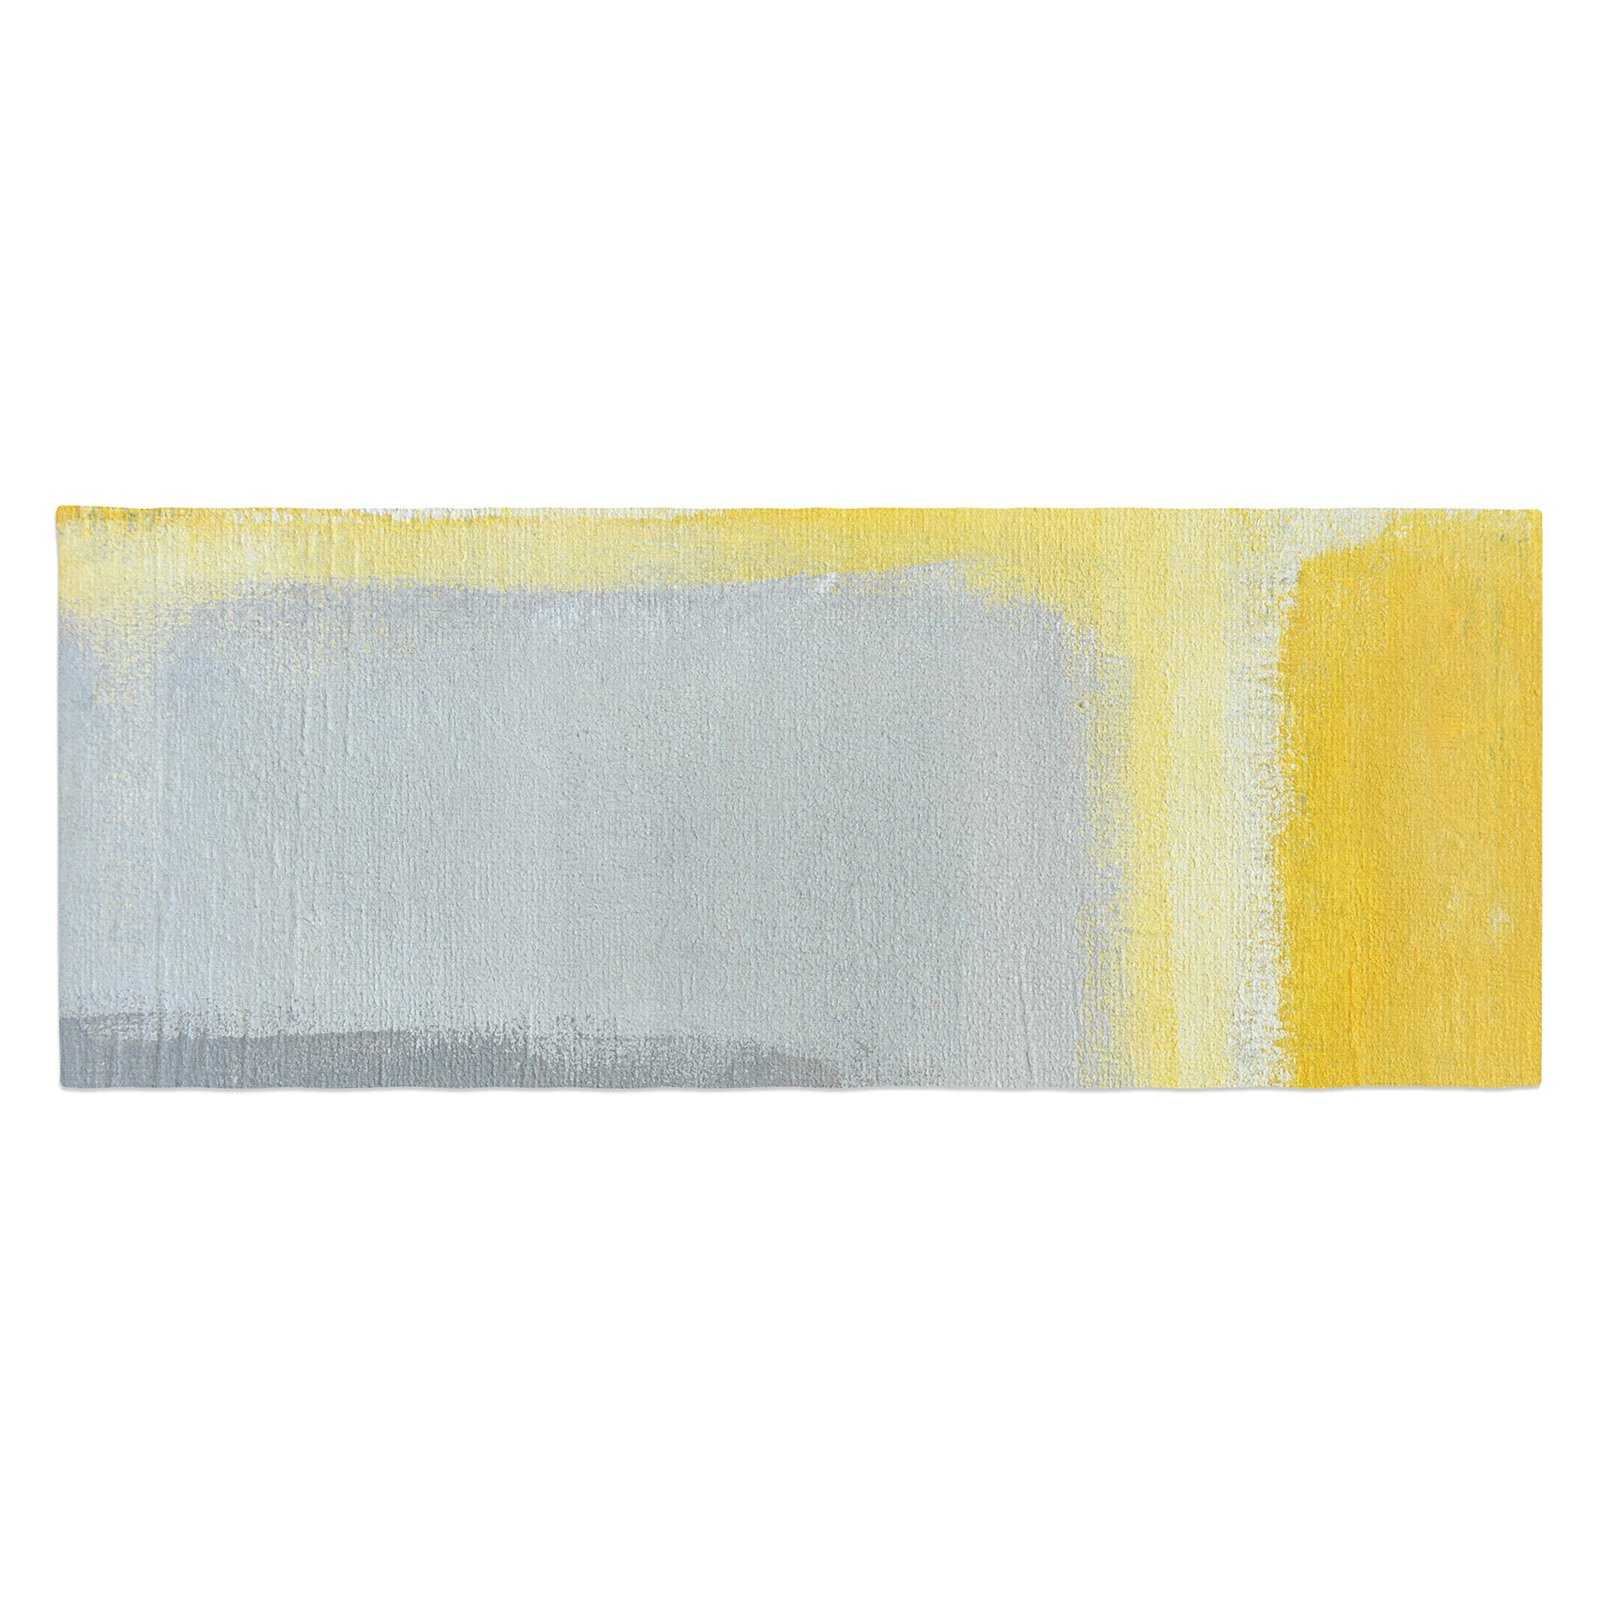 CarolLynn Tice Gray and Yellow Bed Runner by Kess InHouse